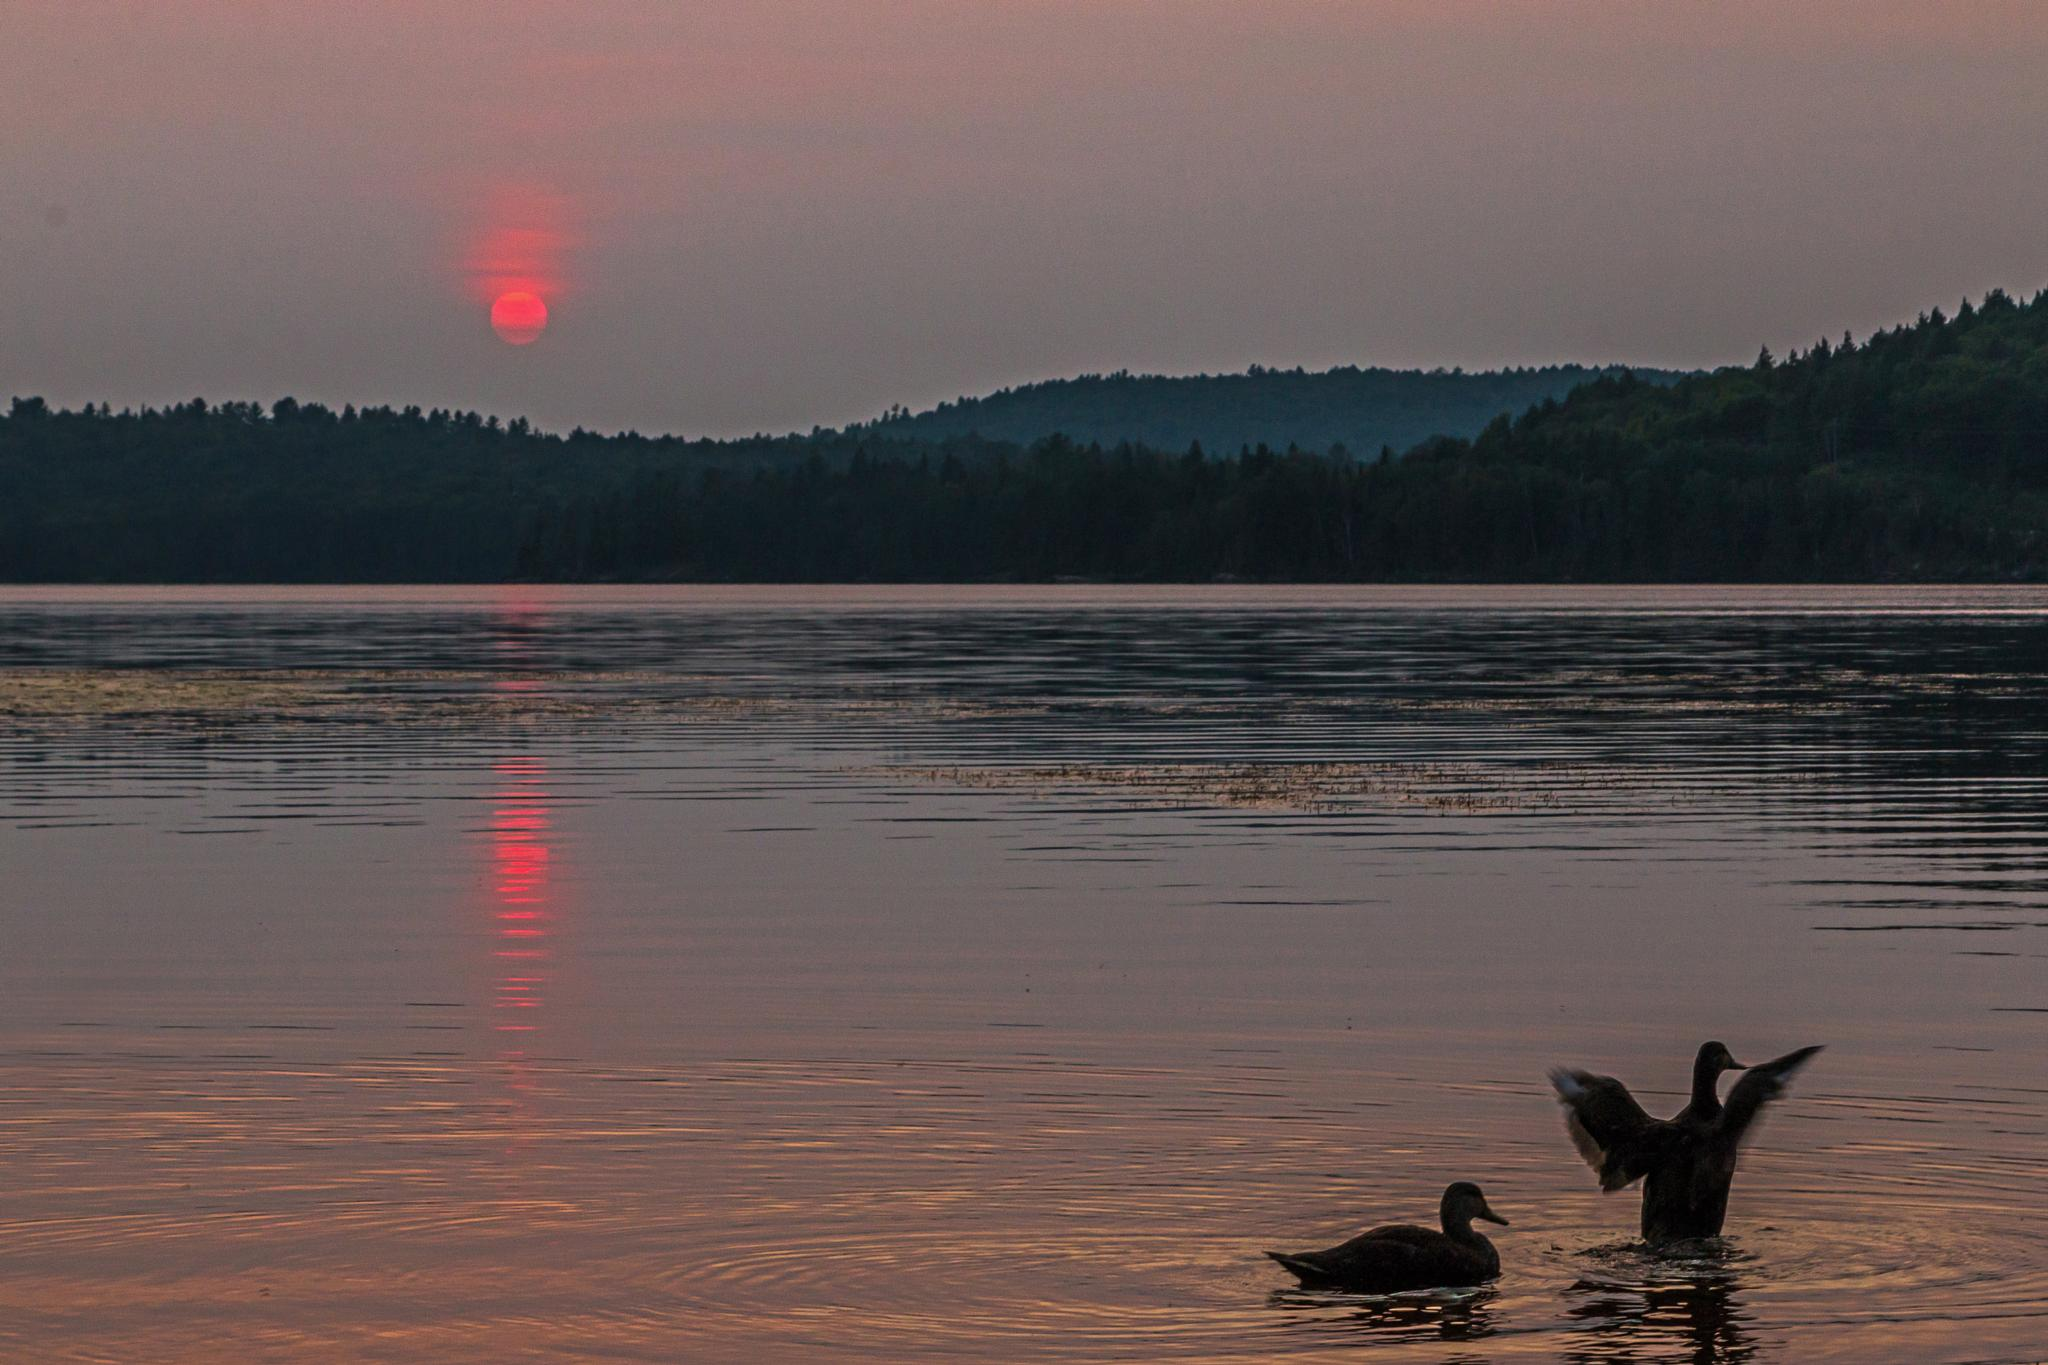 Sunset and Two Black Ducks at LOTR by Steve Dunsford